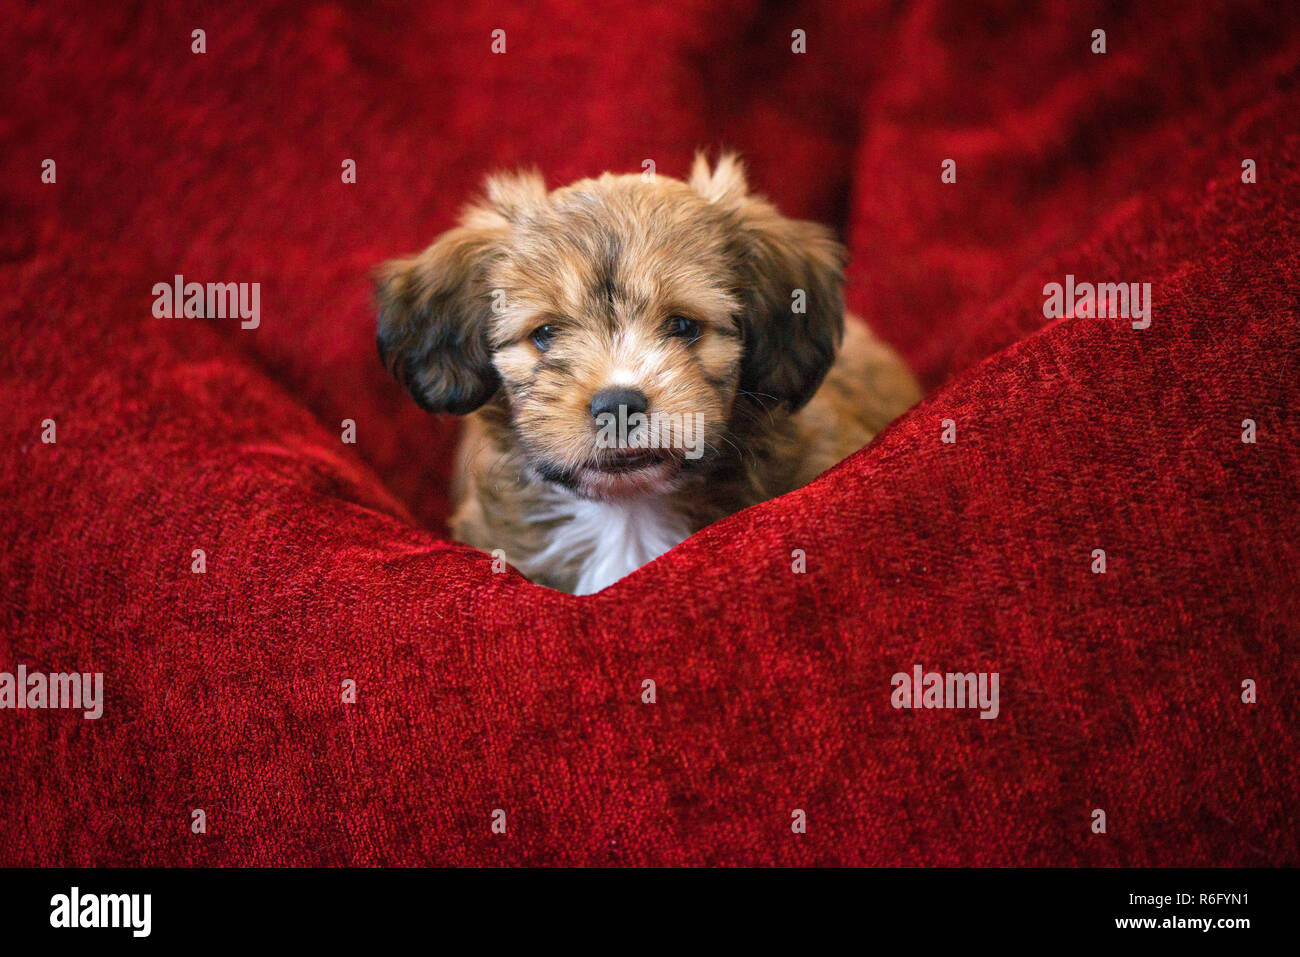 Curious dog obediently laying in big red bean bag. Little, lovely, adorable, fluffy, cute brown puppy is left alone home. Concept of discovering the w - Stock Image